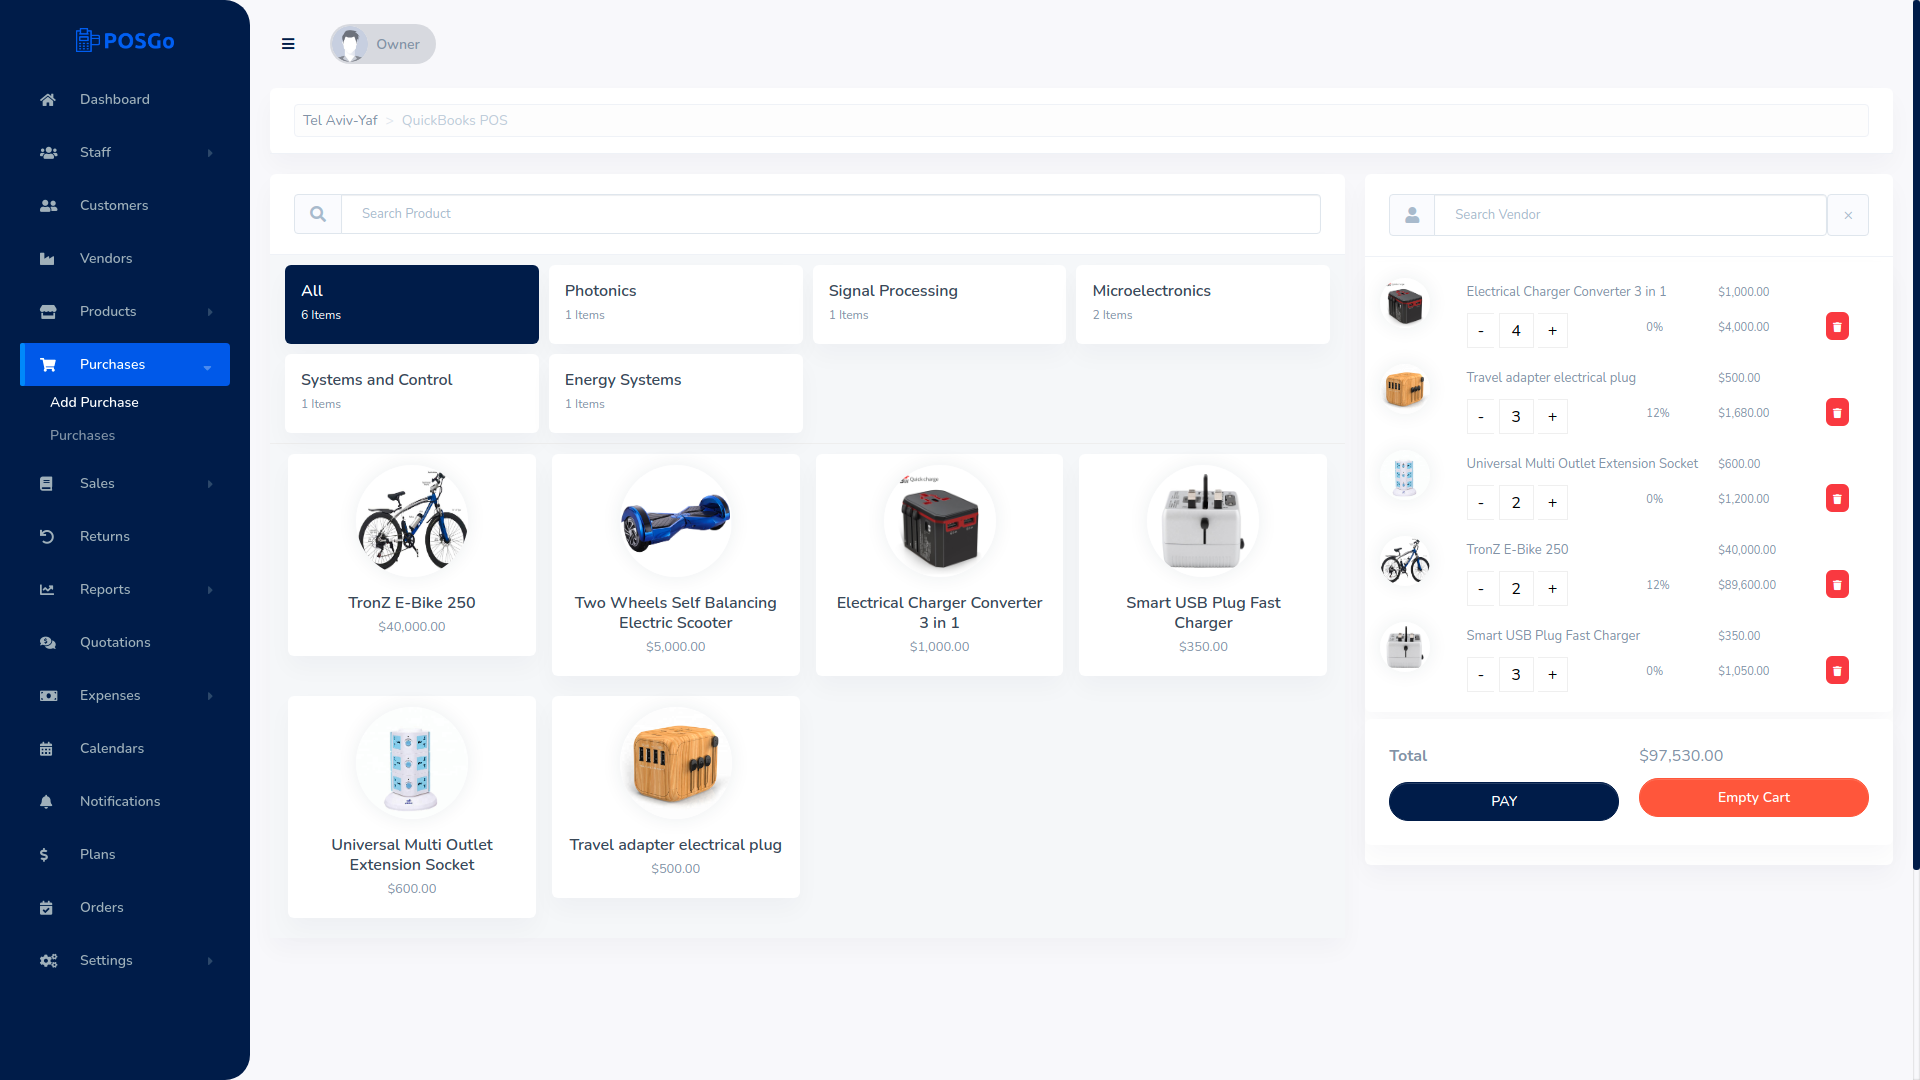 POSGo SaaS - Purchase and Sales Management Tool - 5